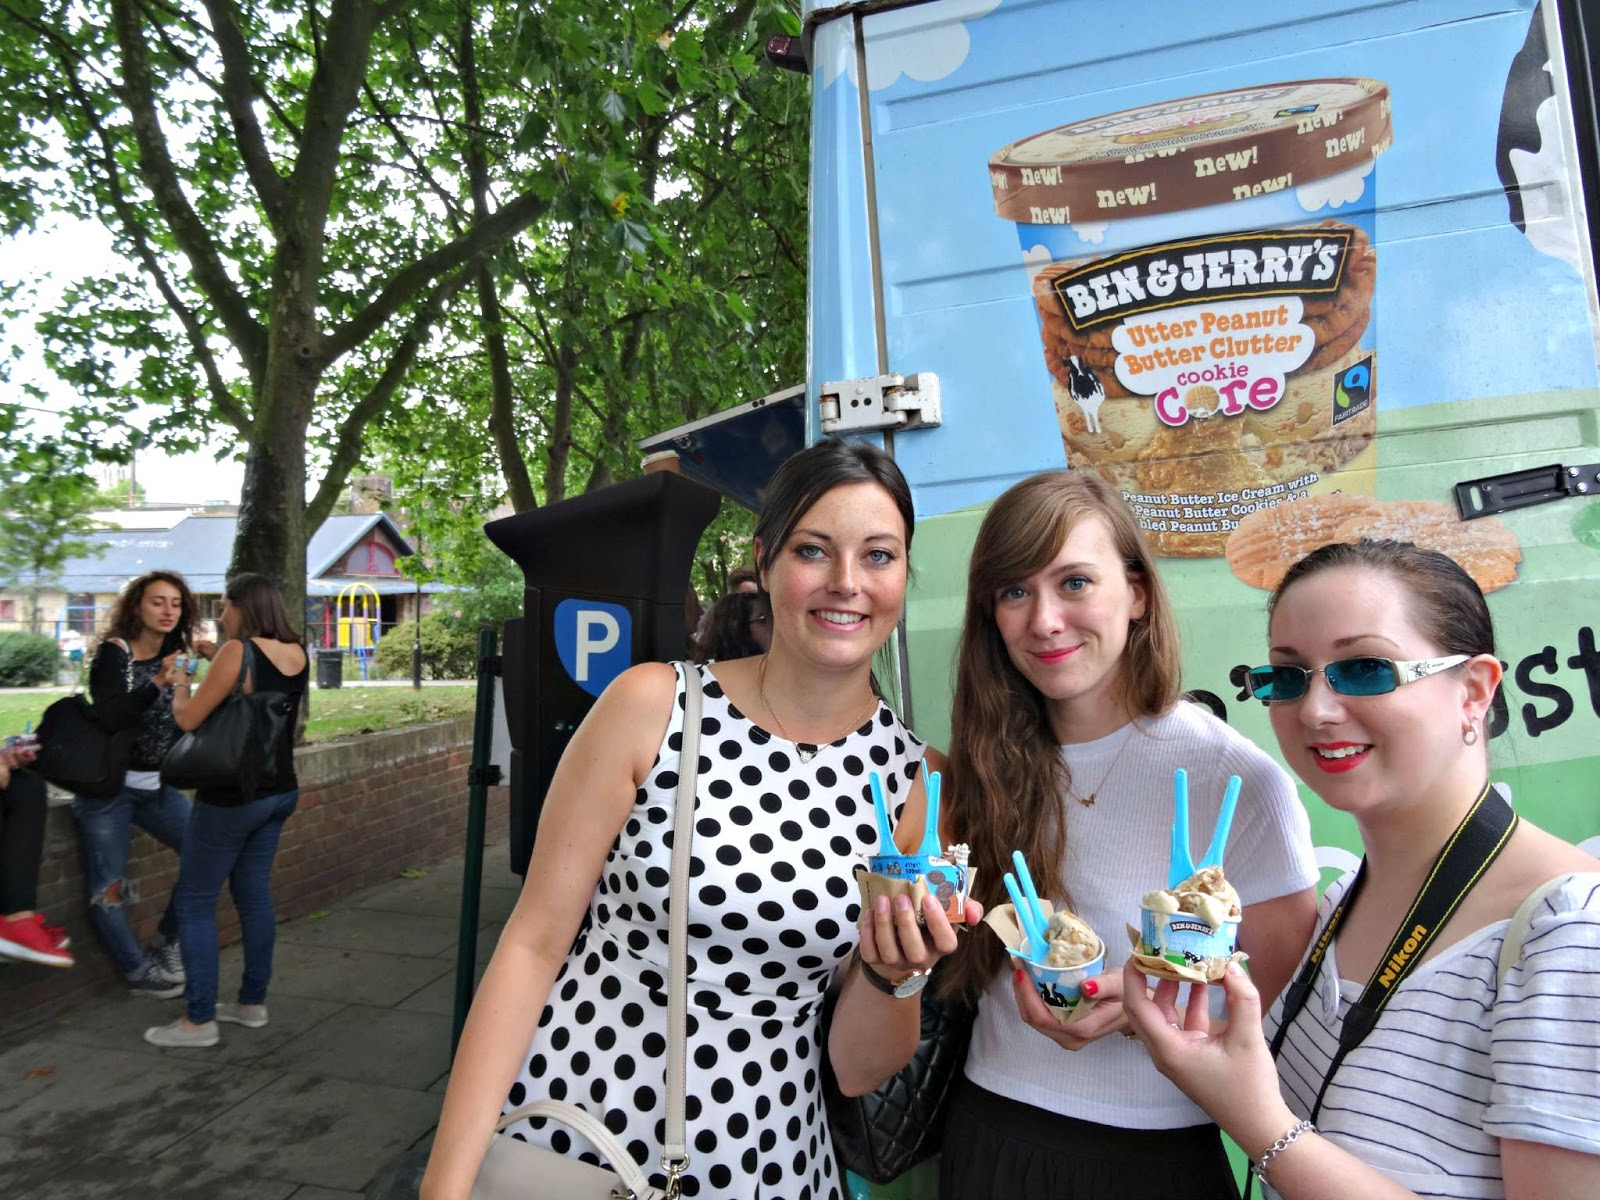 ben and jerrys ice cream van in Camden